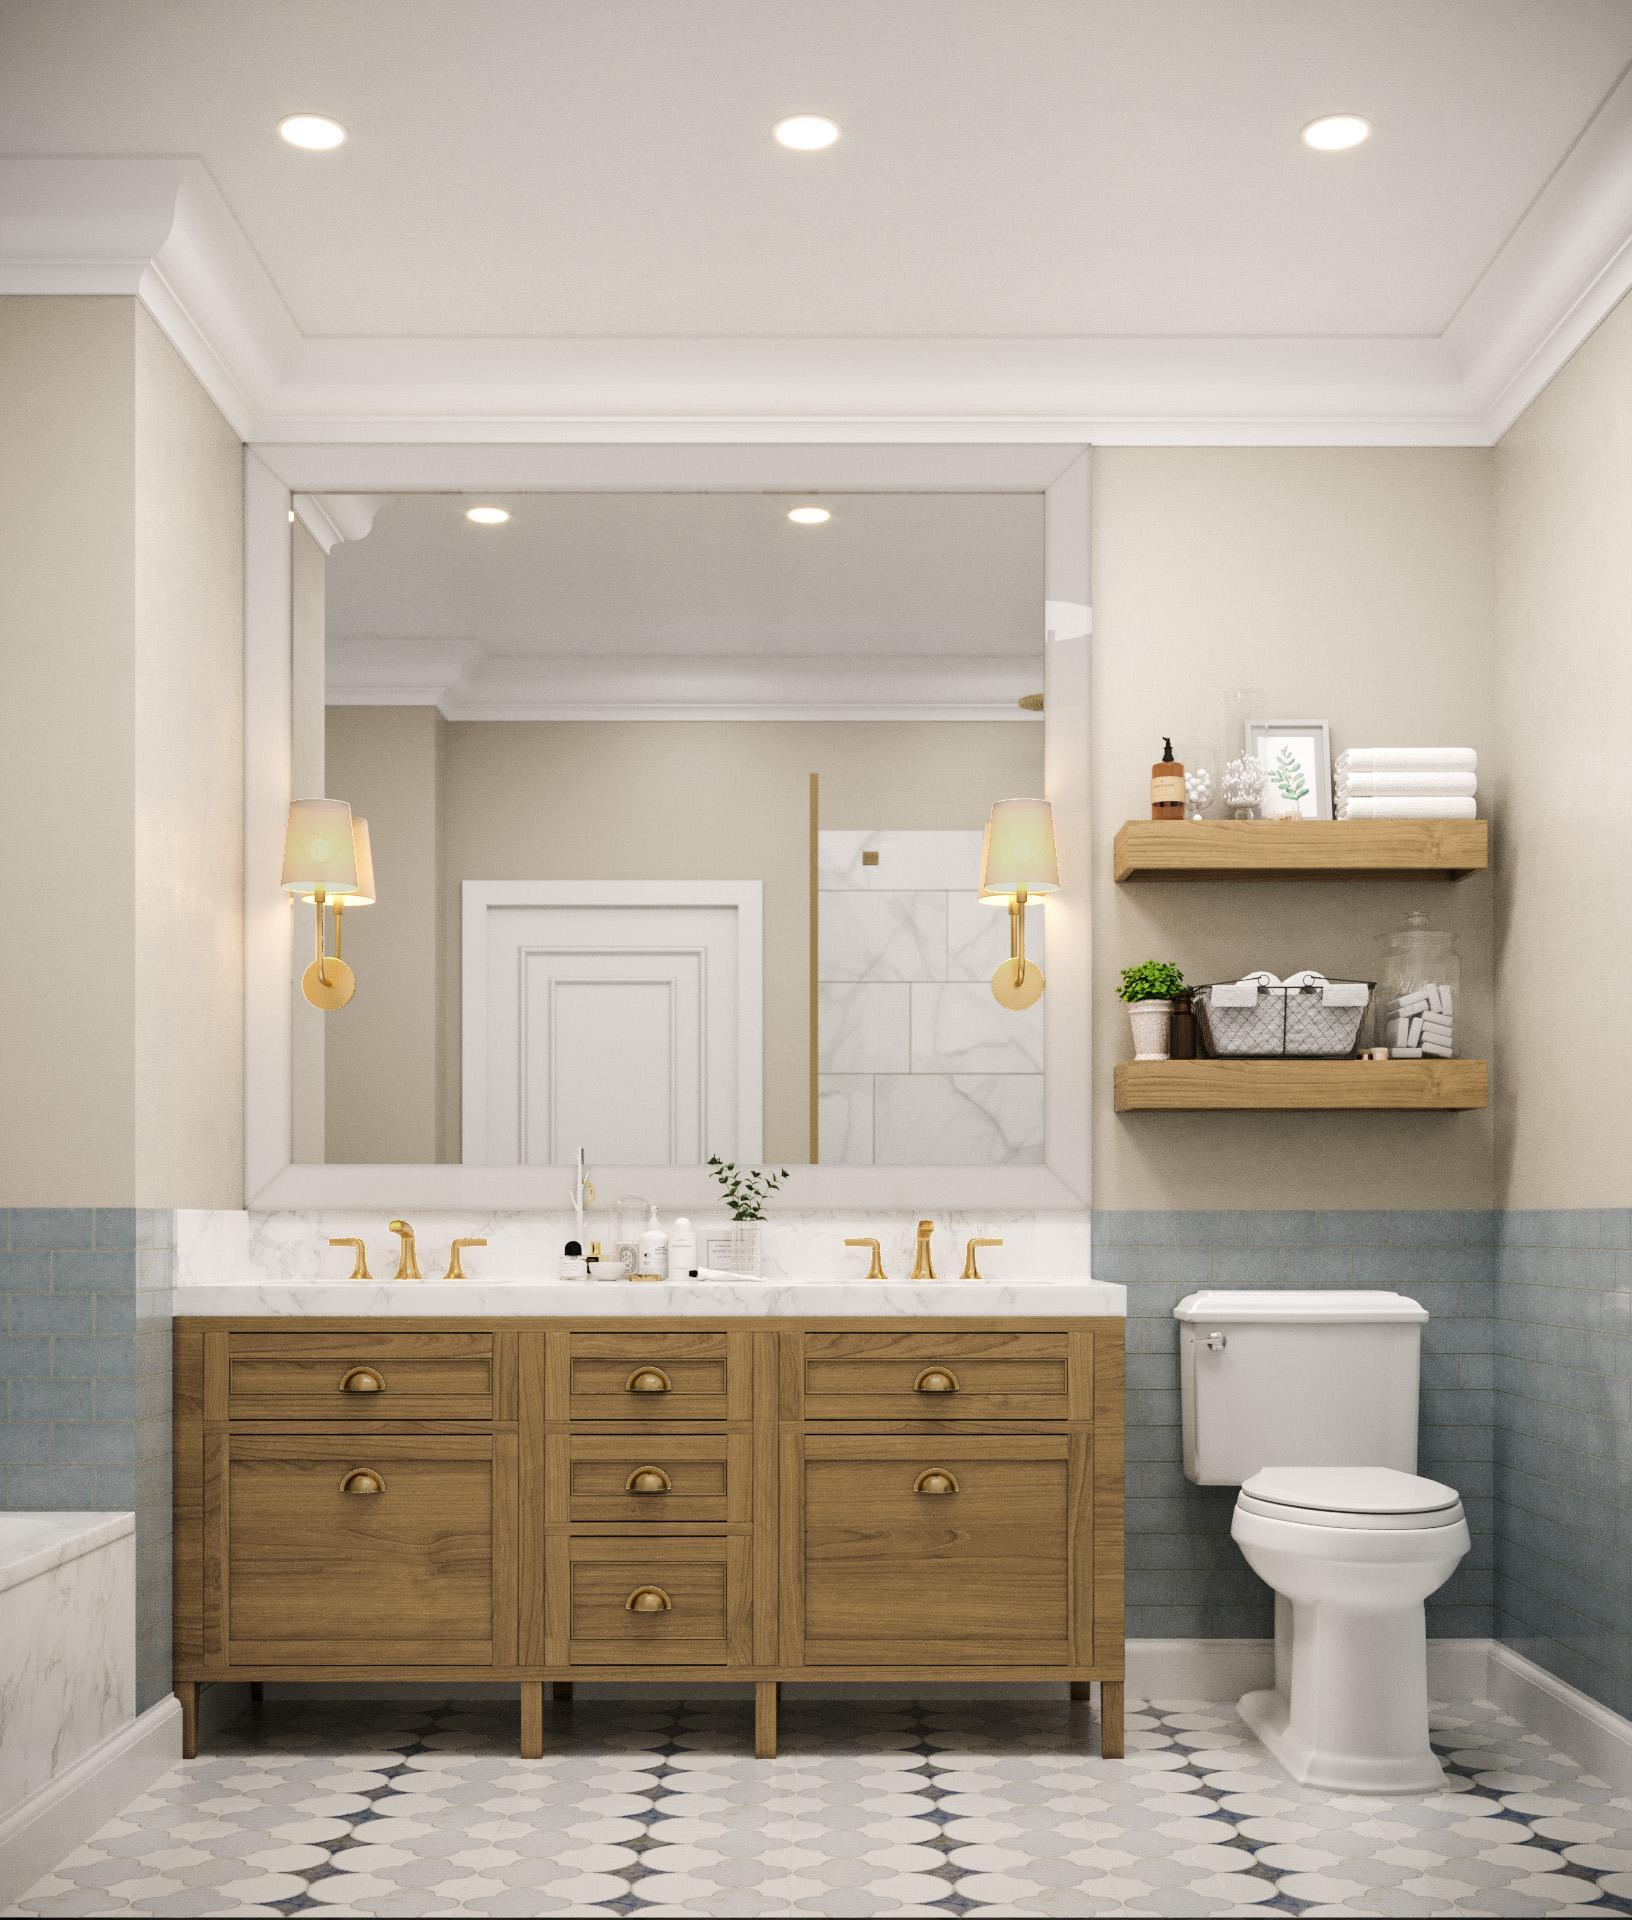 Bathroom featured in the Townhome E1 By Beechwood Homes in Nassau-Suffolk, NY